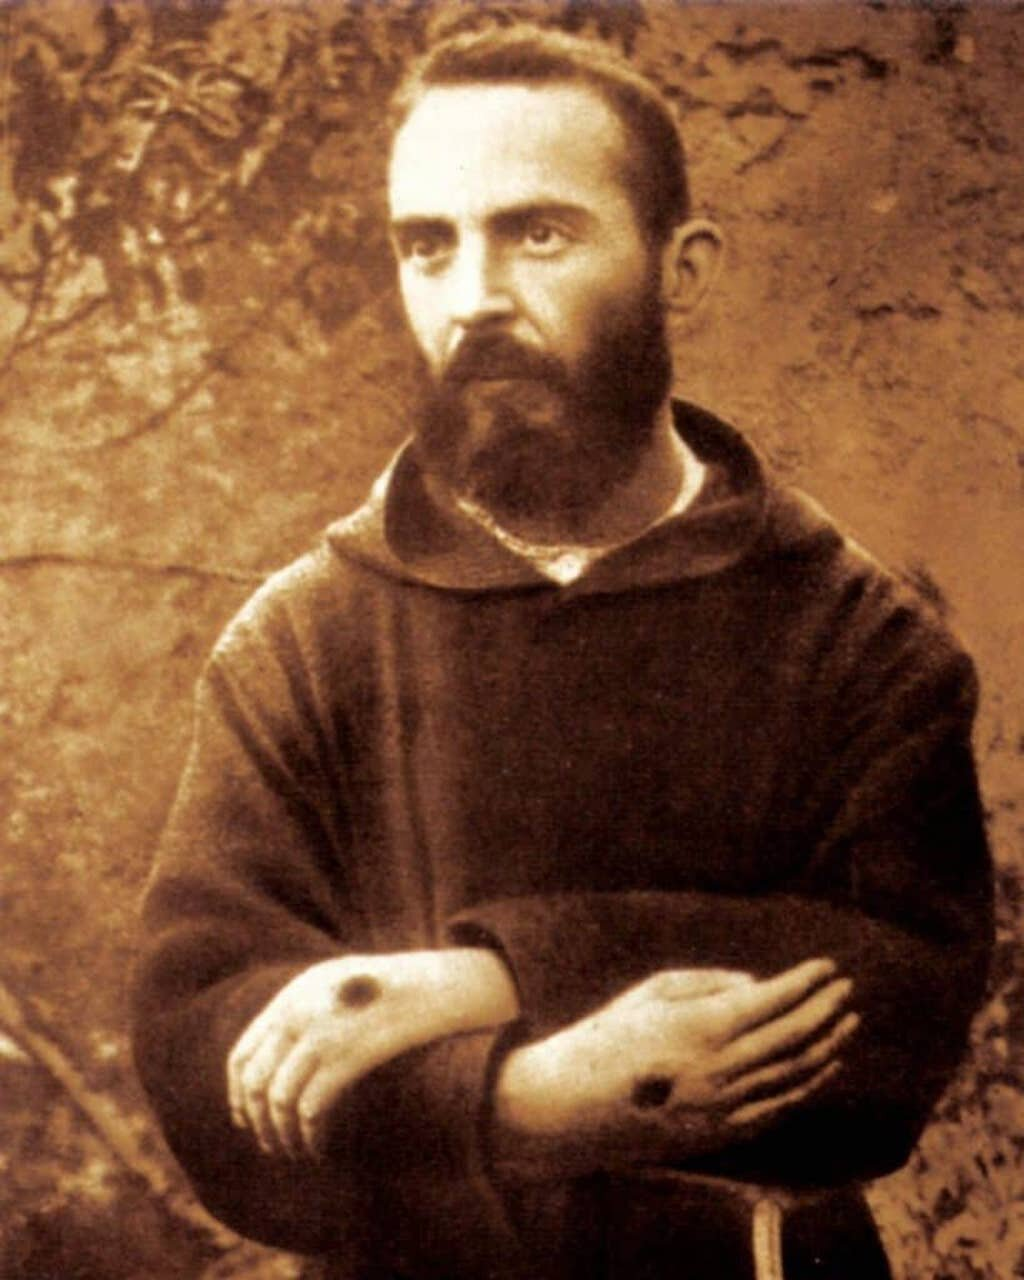 Francesco Forgione is better known as Padre Pio. The stigmata is visible on his hands.